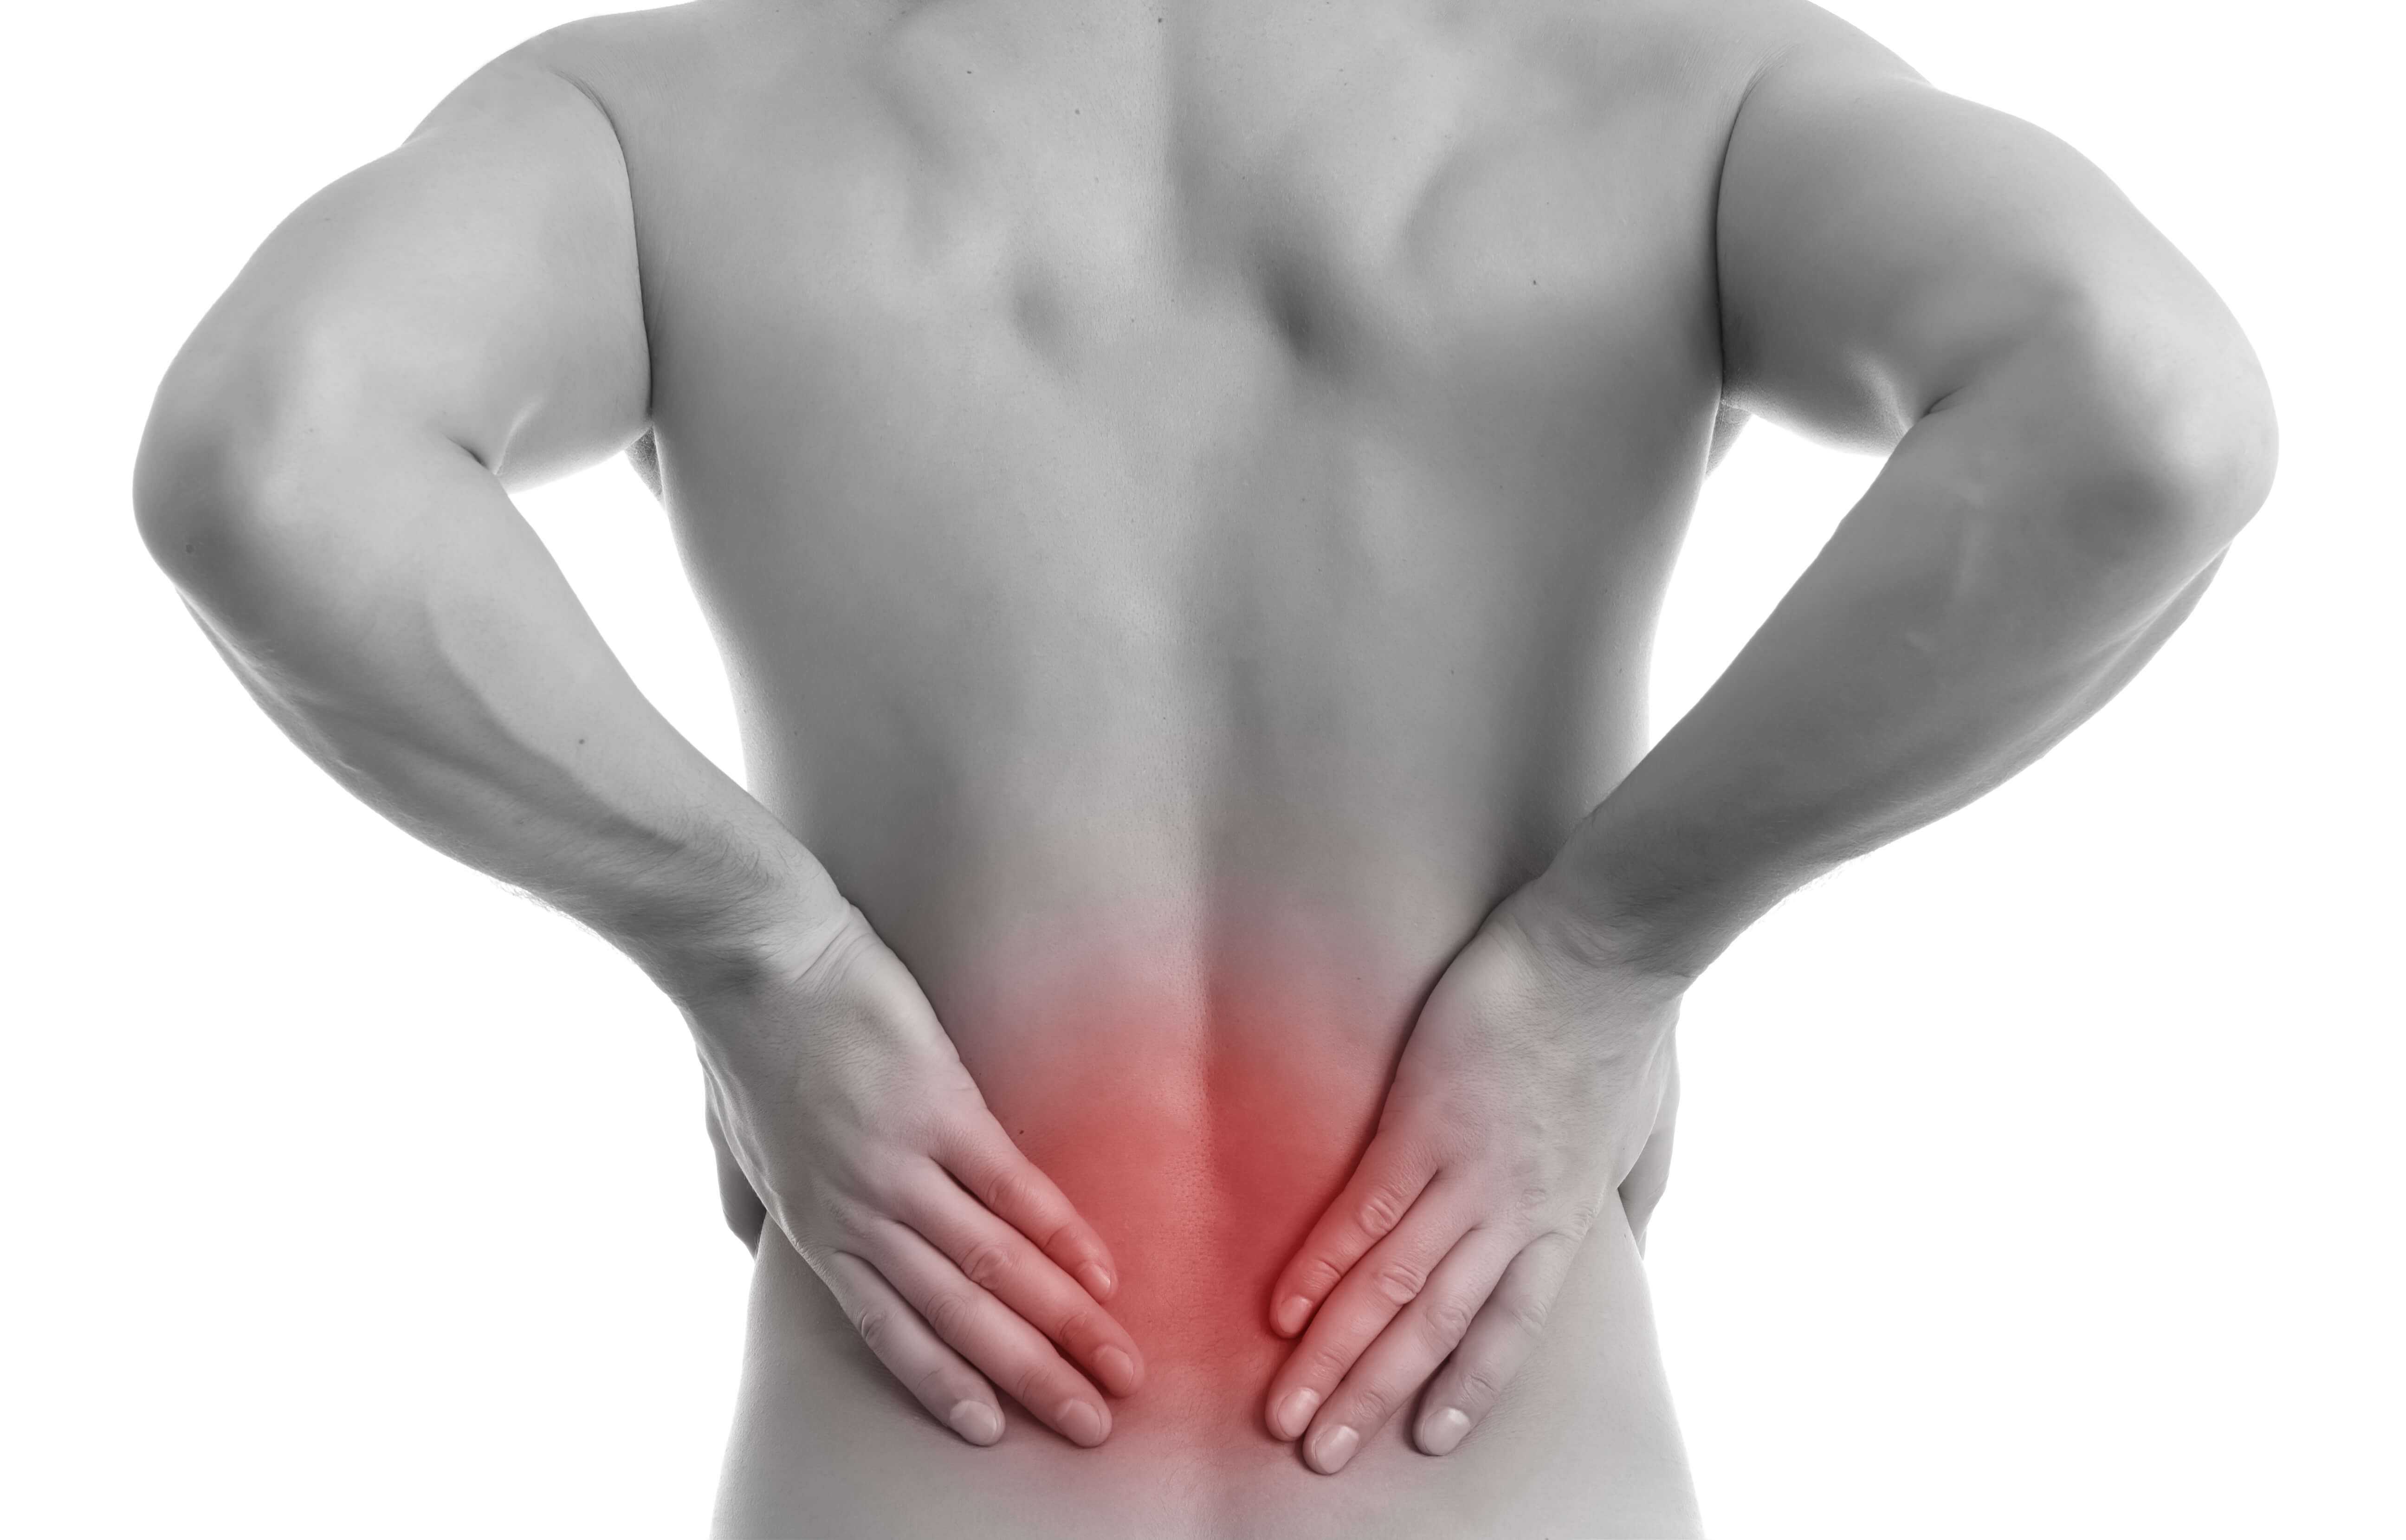 sciatica lower back pain